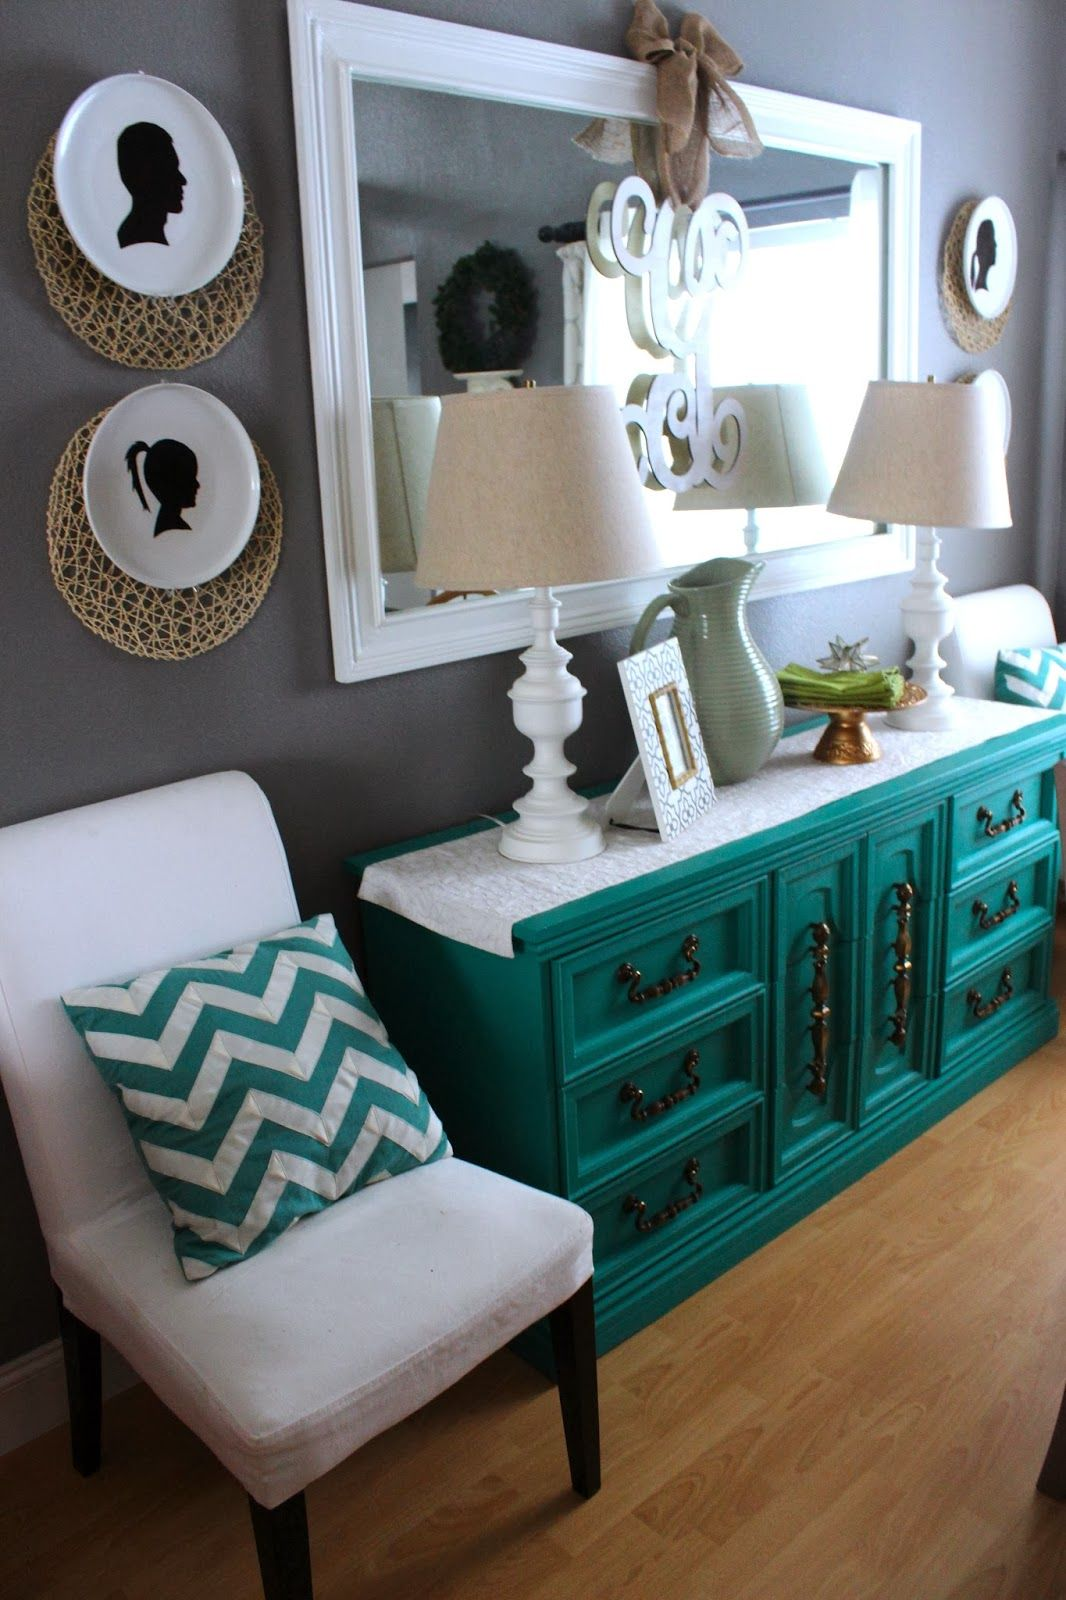 10 Ways To Revive An Old Dresser